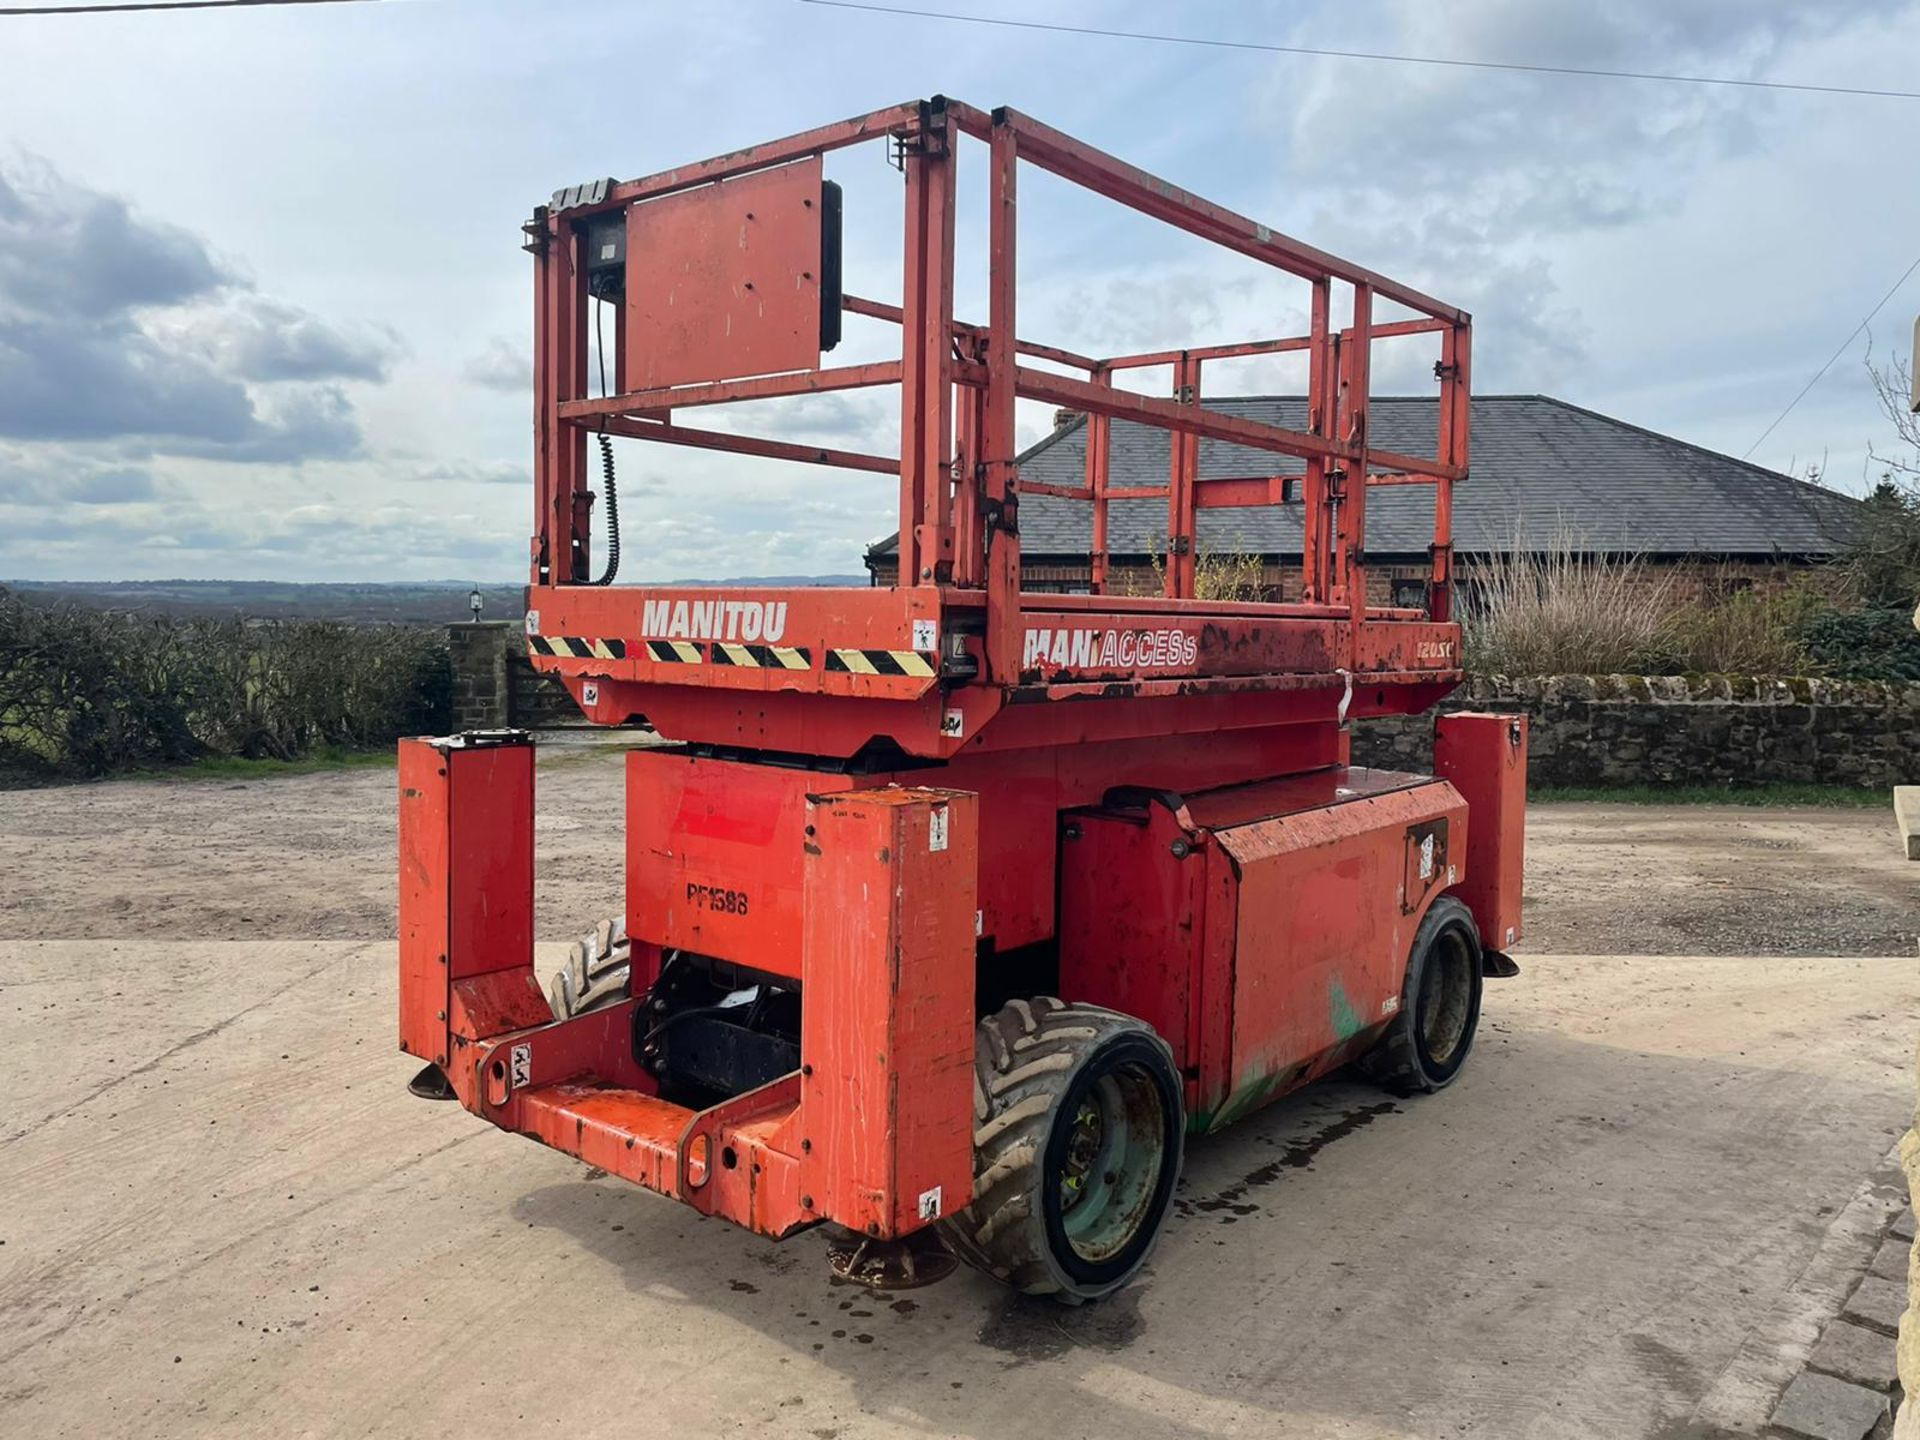 2013 MANITOU MANI-ACCESS 120SC SCISSOR LIFT, RUNS, DRIVES AND LIFTS *PLUS VAT* - Image 4 of 12